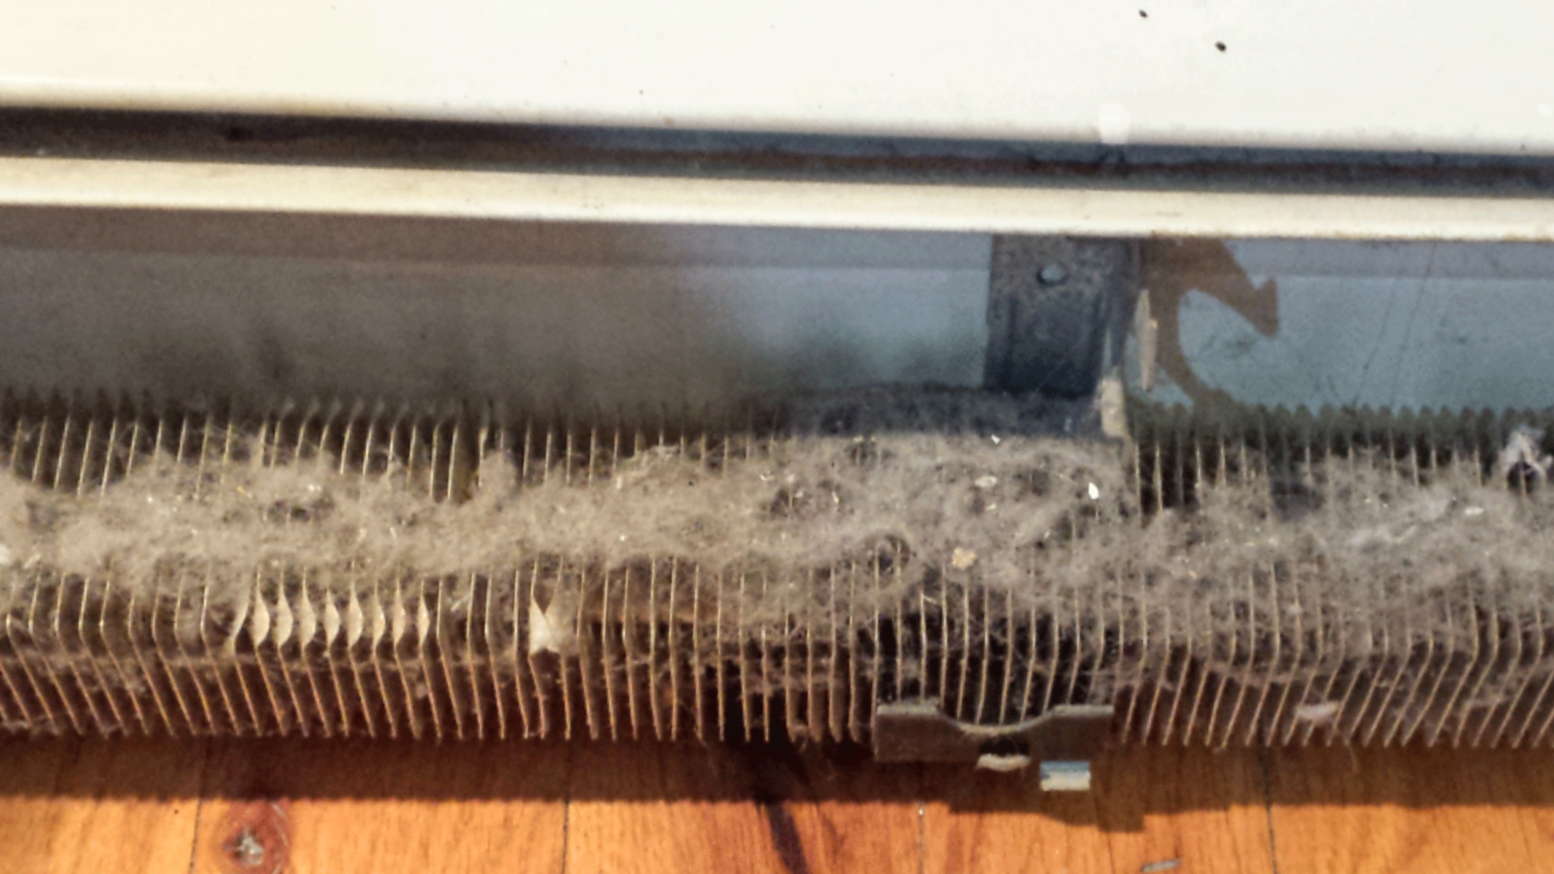 Dirty baseboard heaters are more likely to be noisy